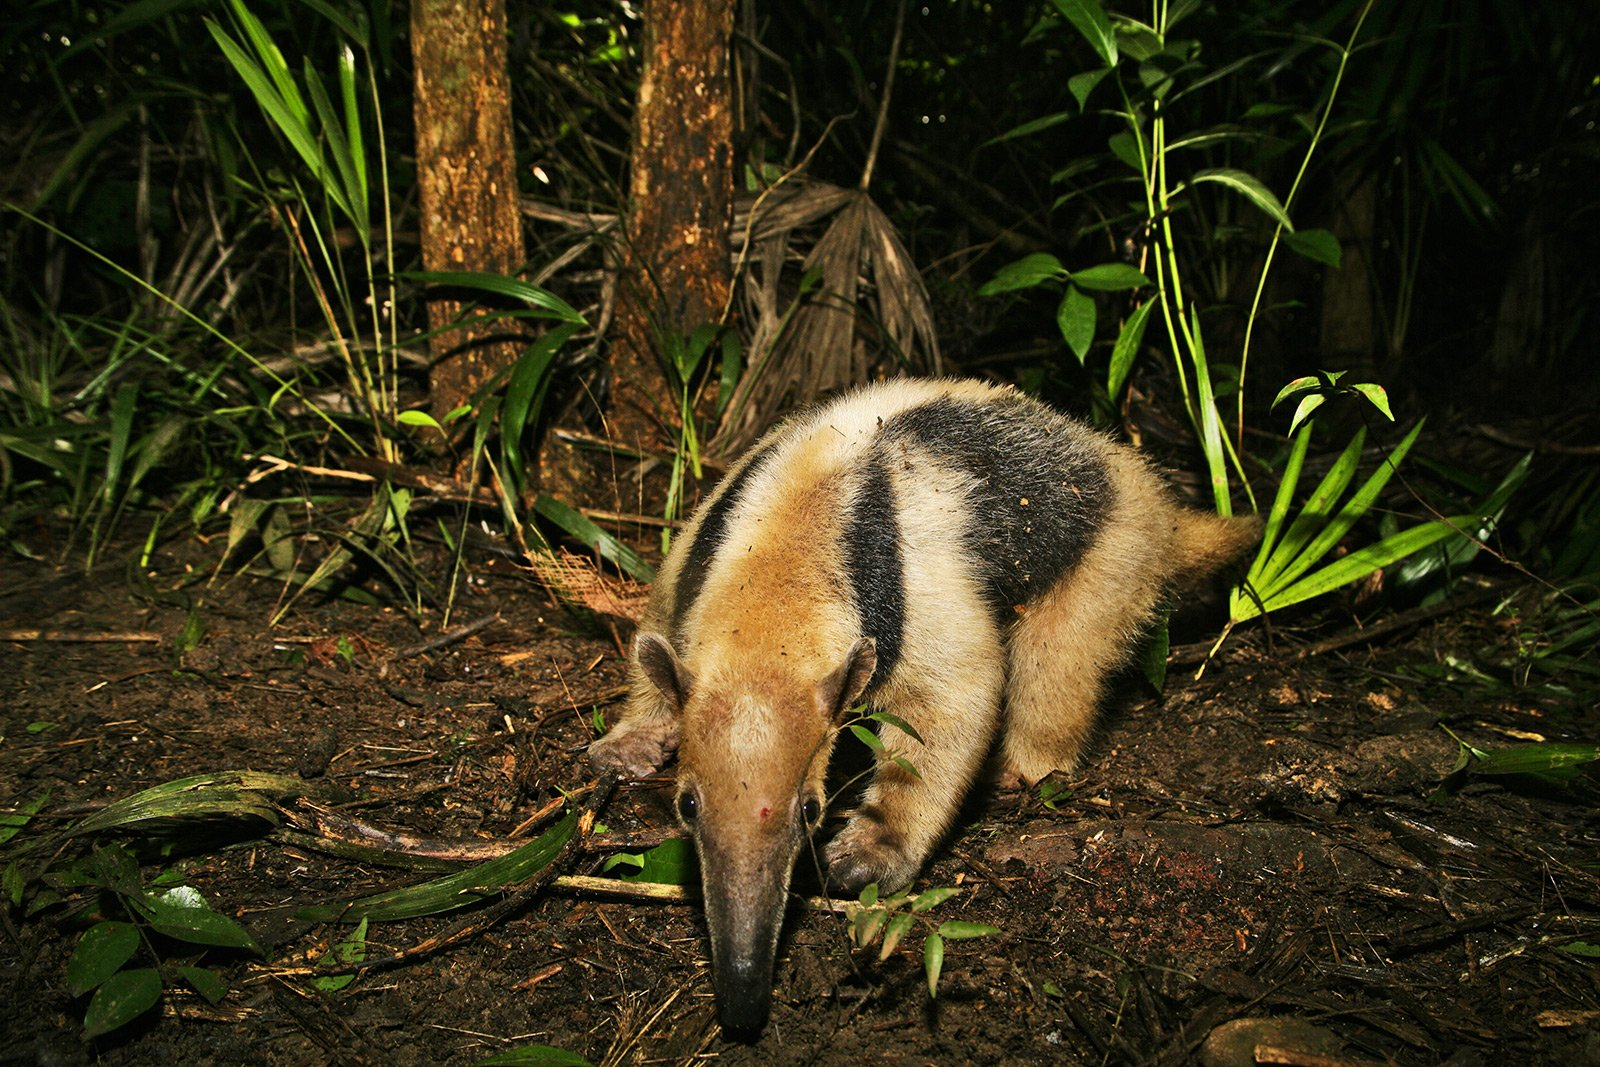 How to see a tamandua in Cancun